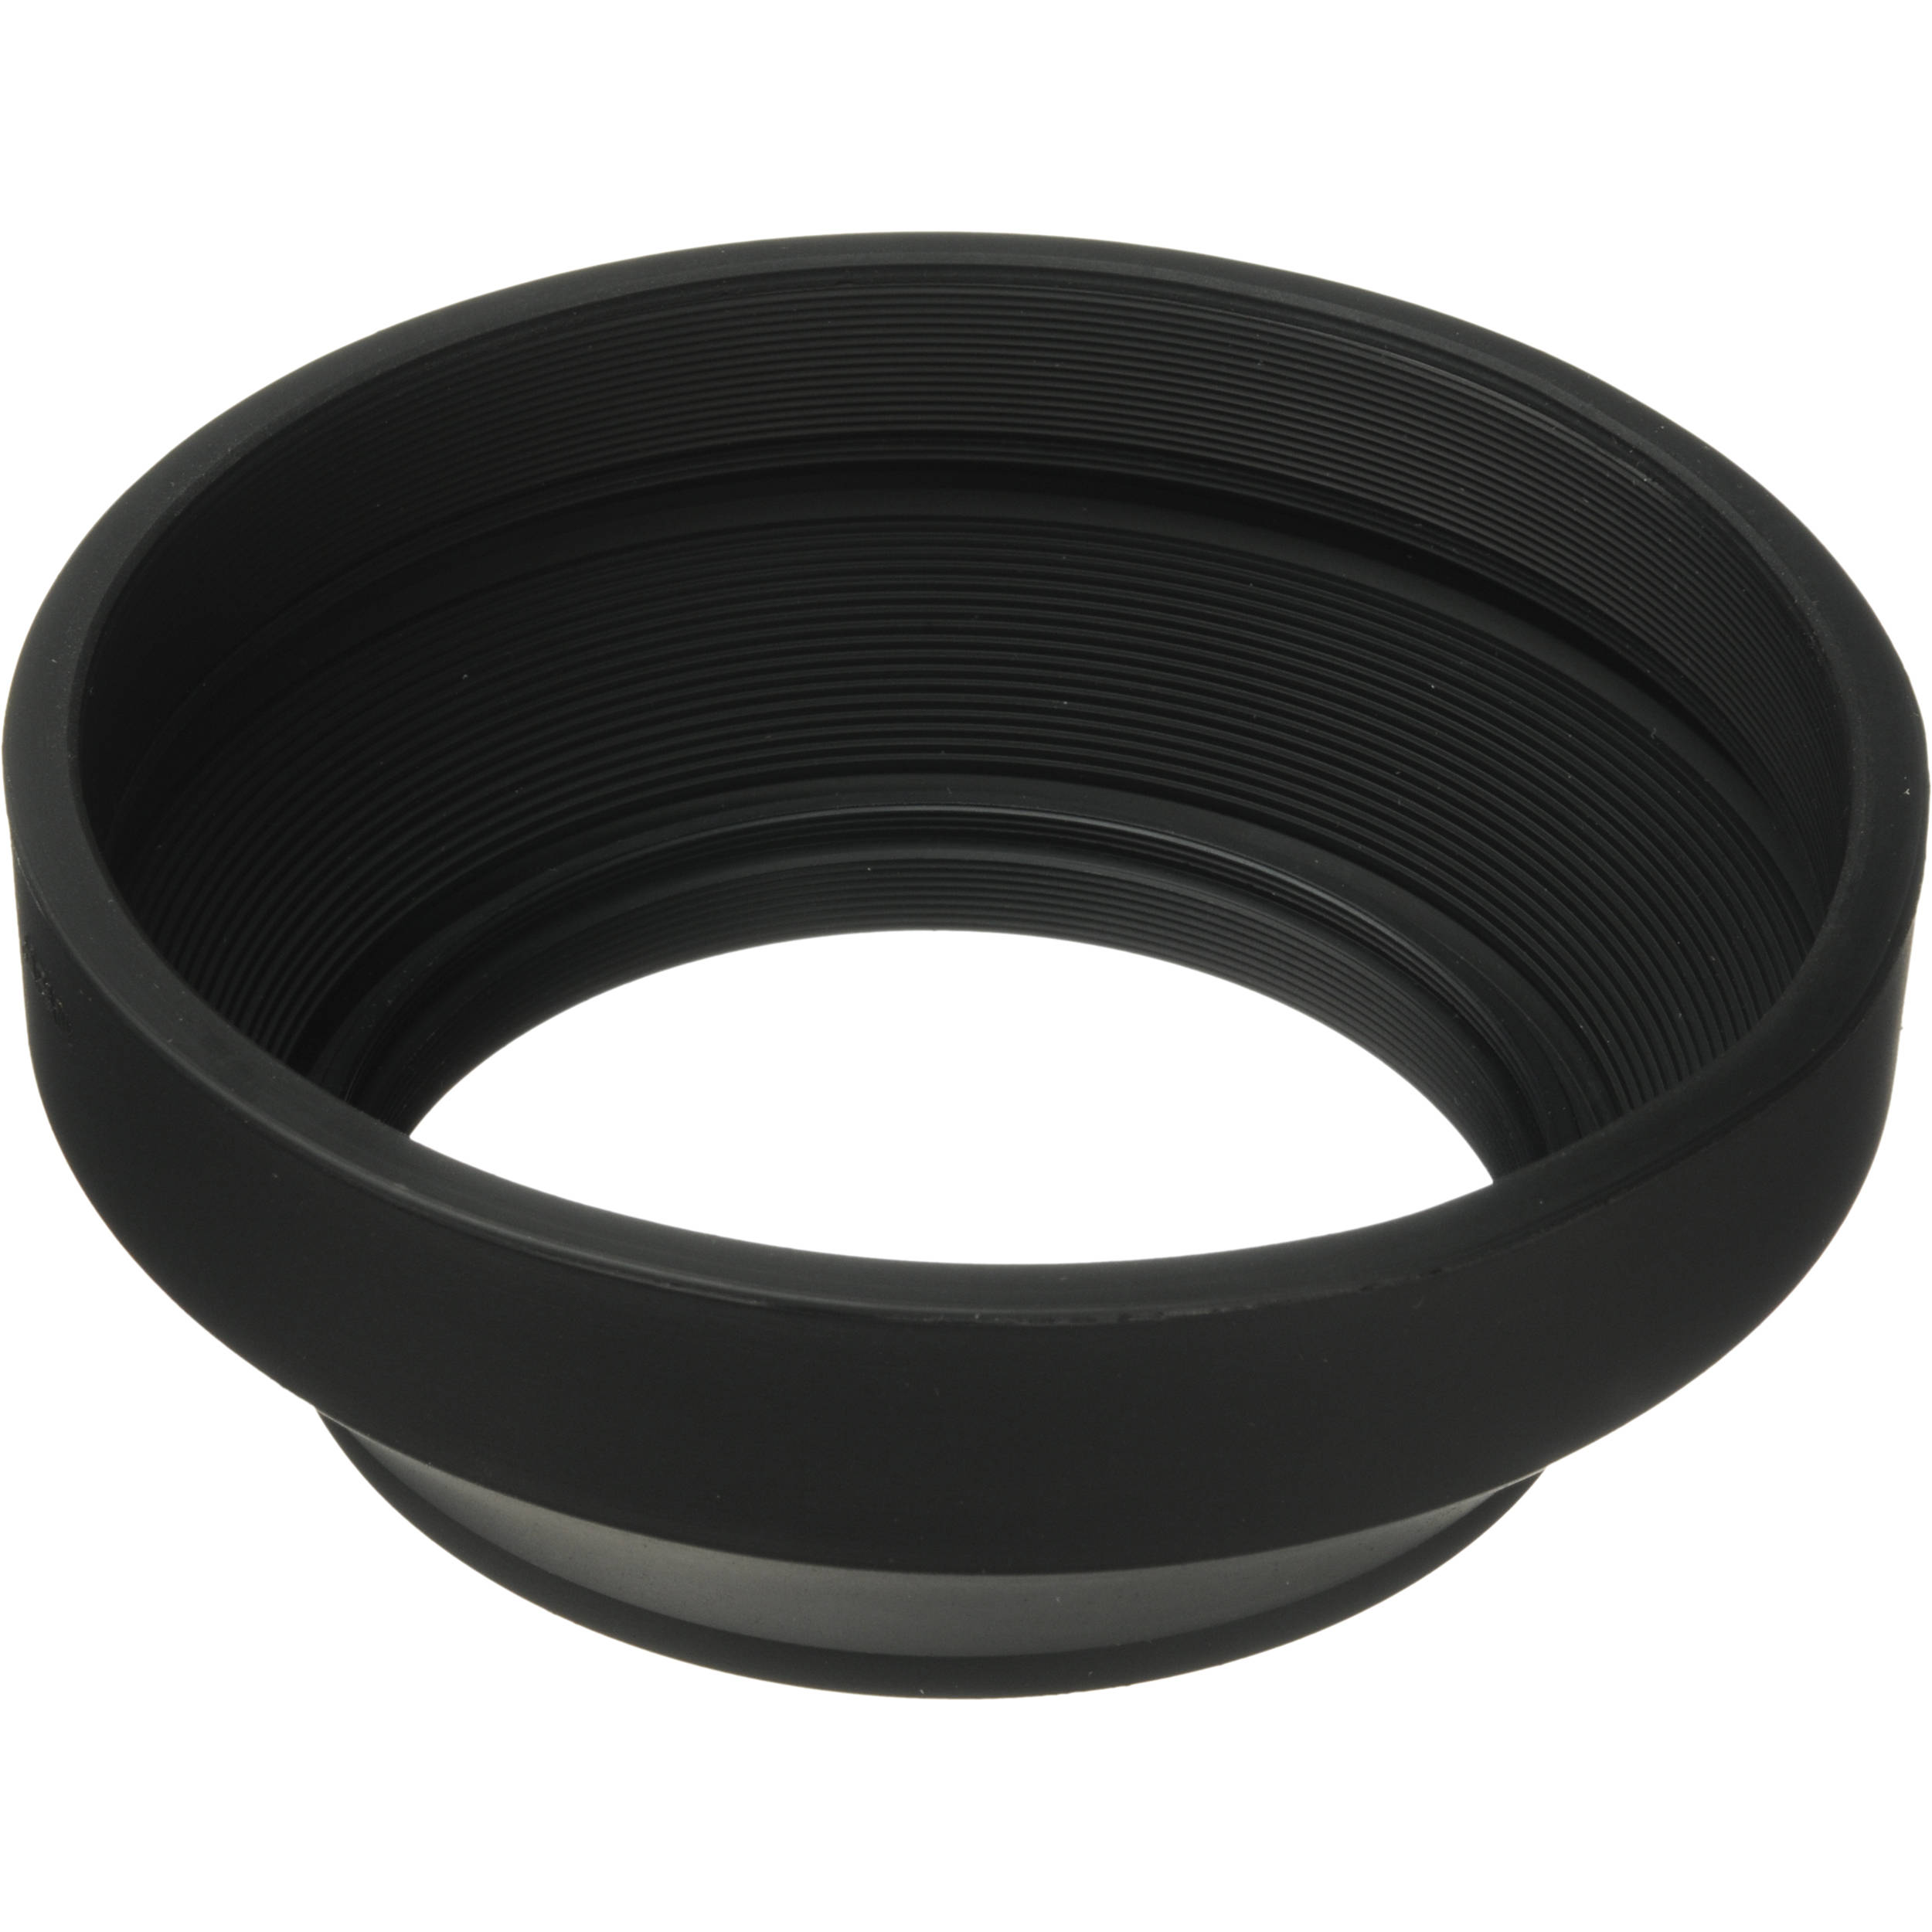 Mamiya Lens Hood for 90mm and 110mm Lens RB67 and RZ67 - Replacement